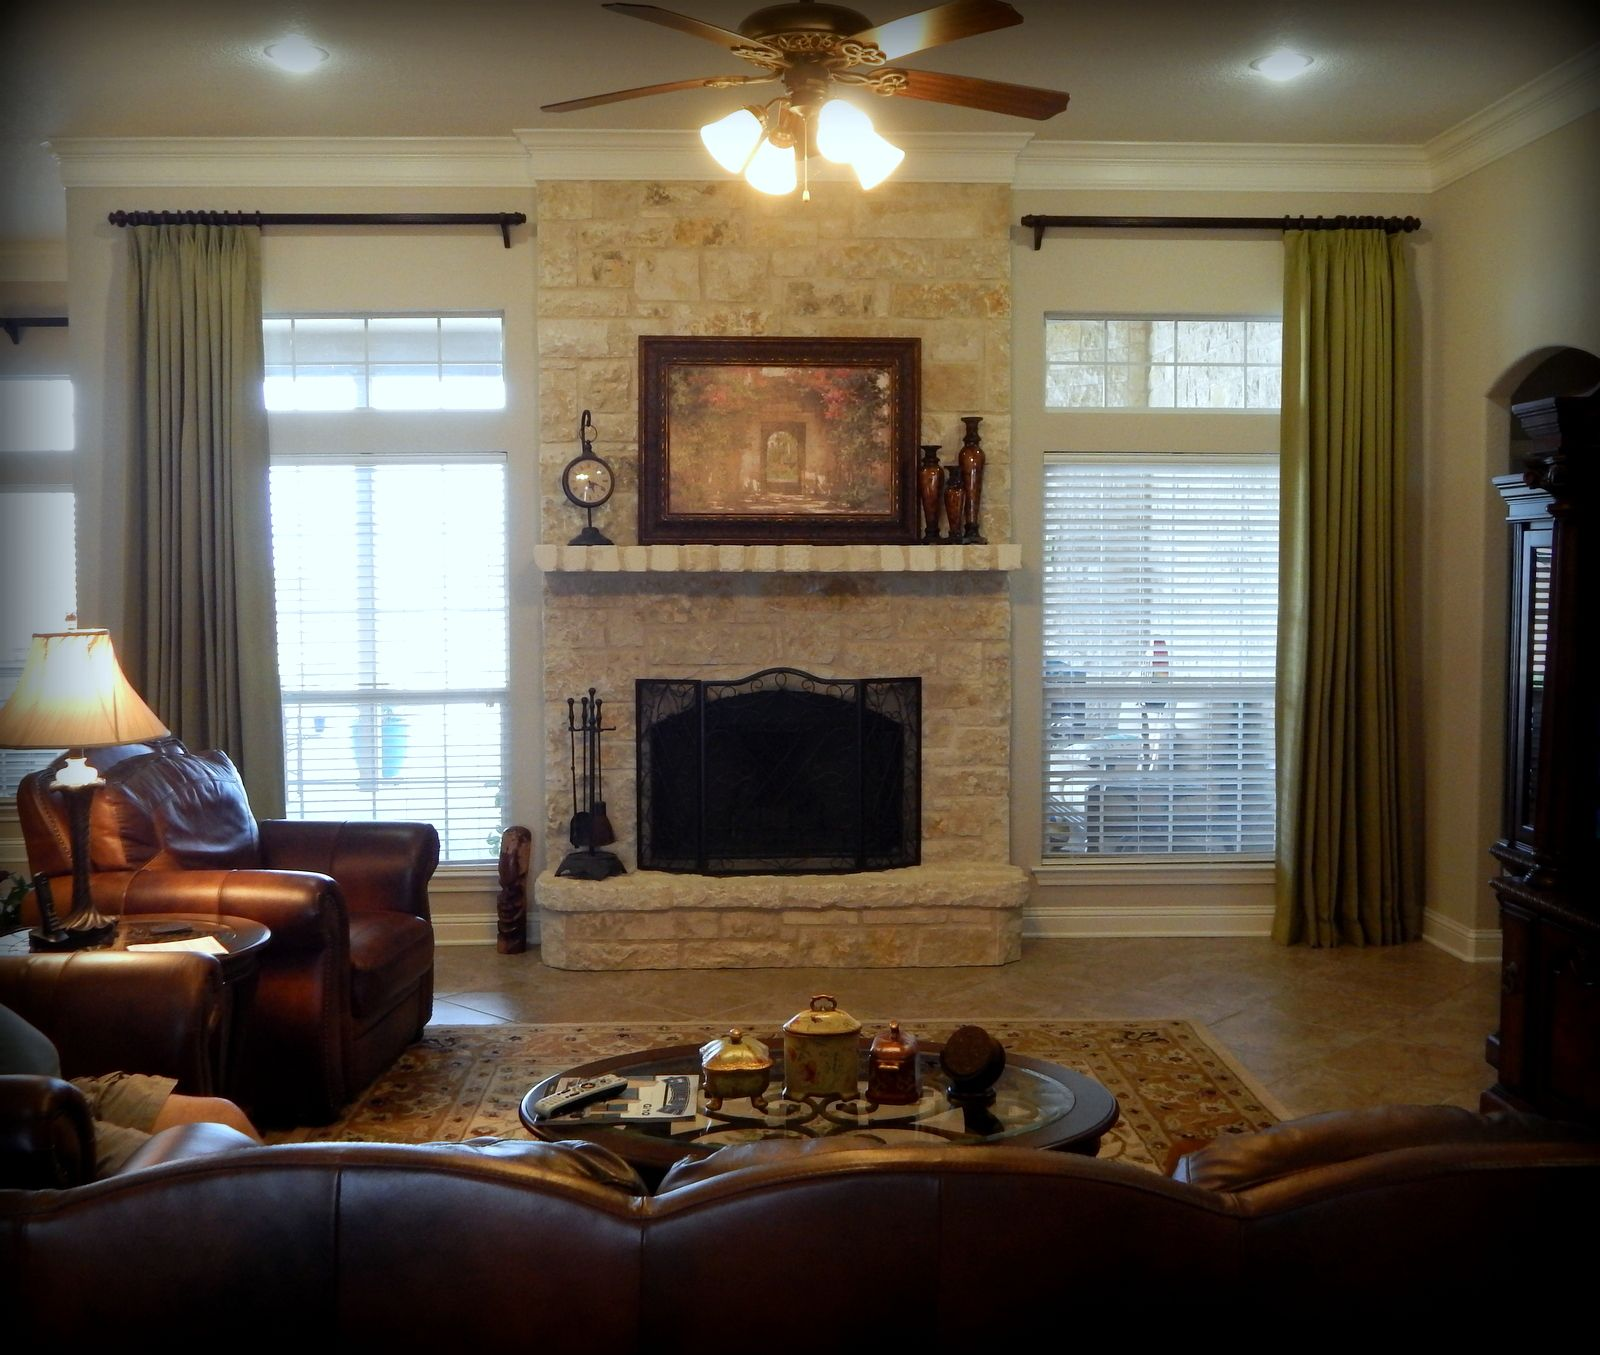 Living Room With Fireplace And Windows custom drapes frame out fireplace. no room for two panels on each